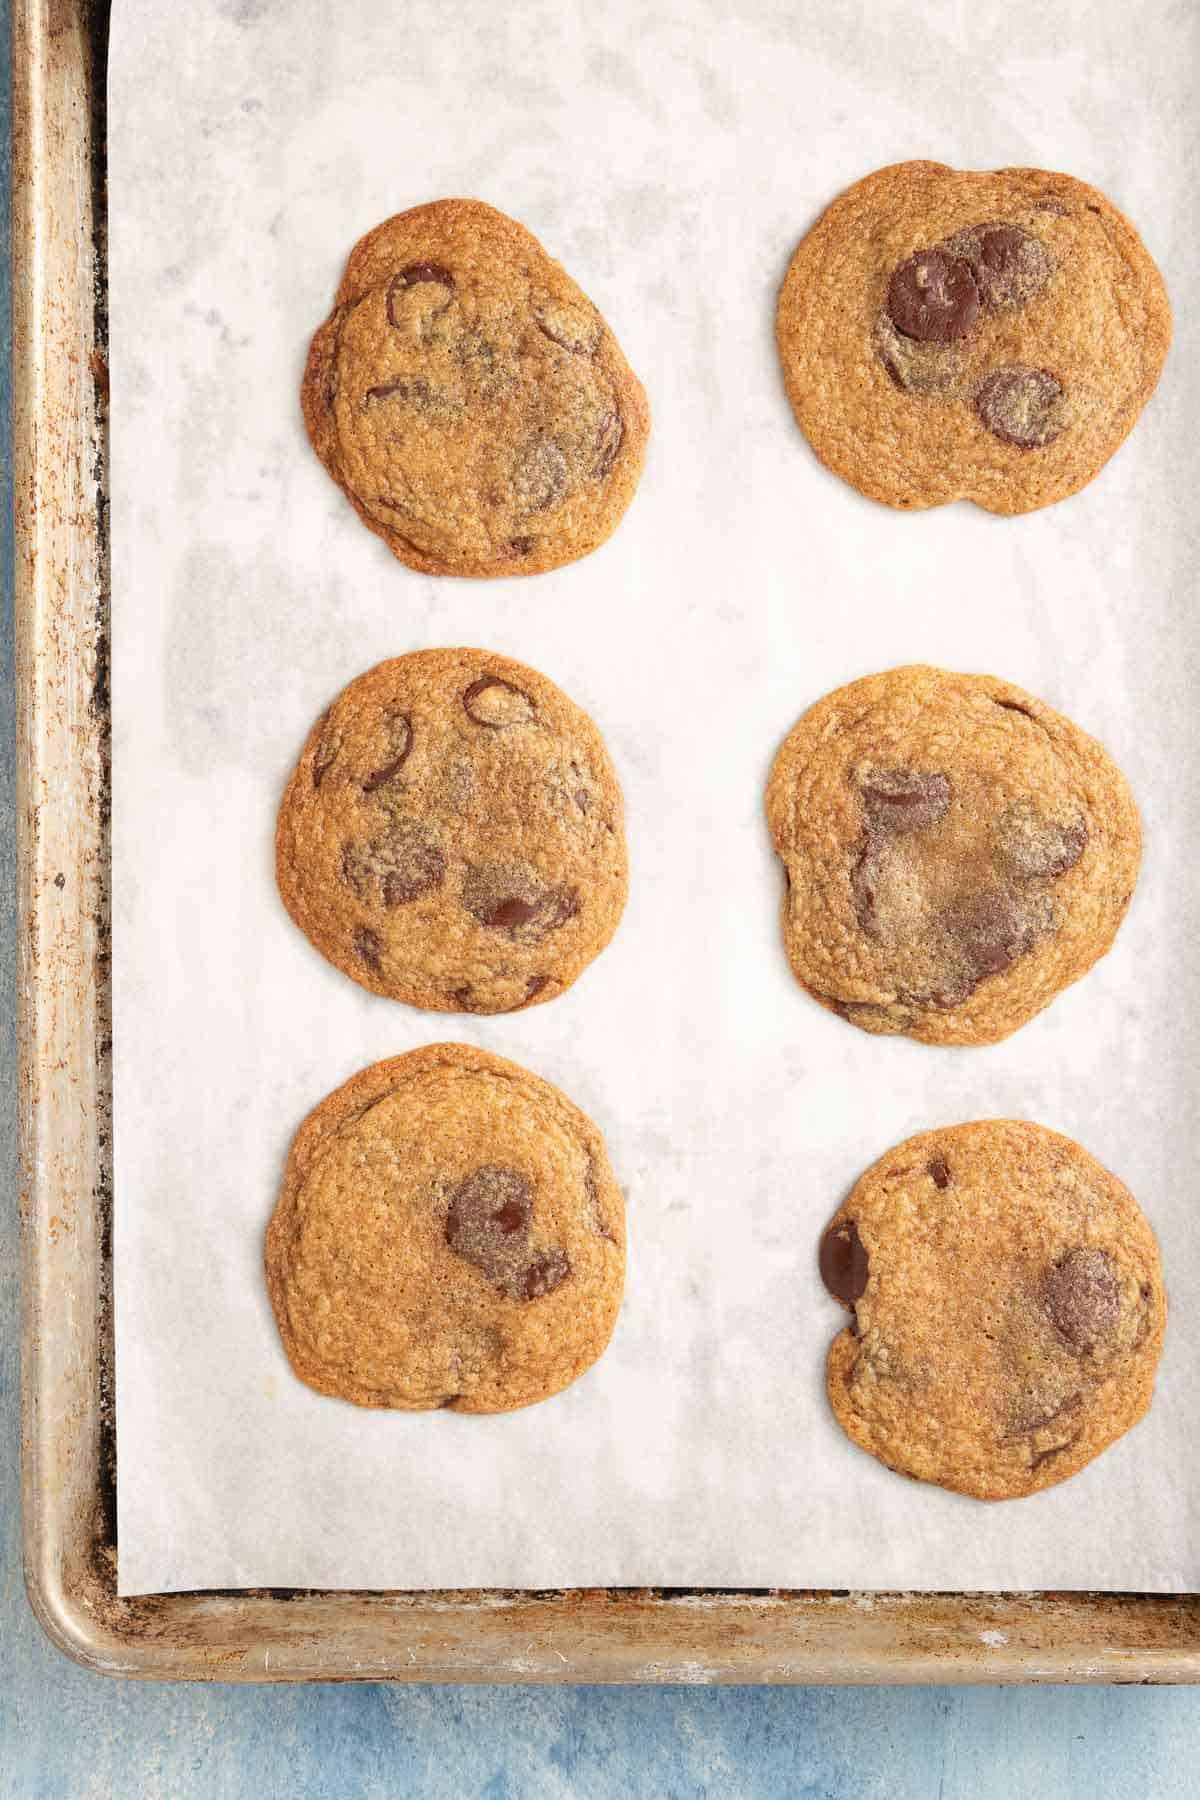 baked chocolate chip cookies on a parchment lined baking sheet